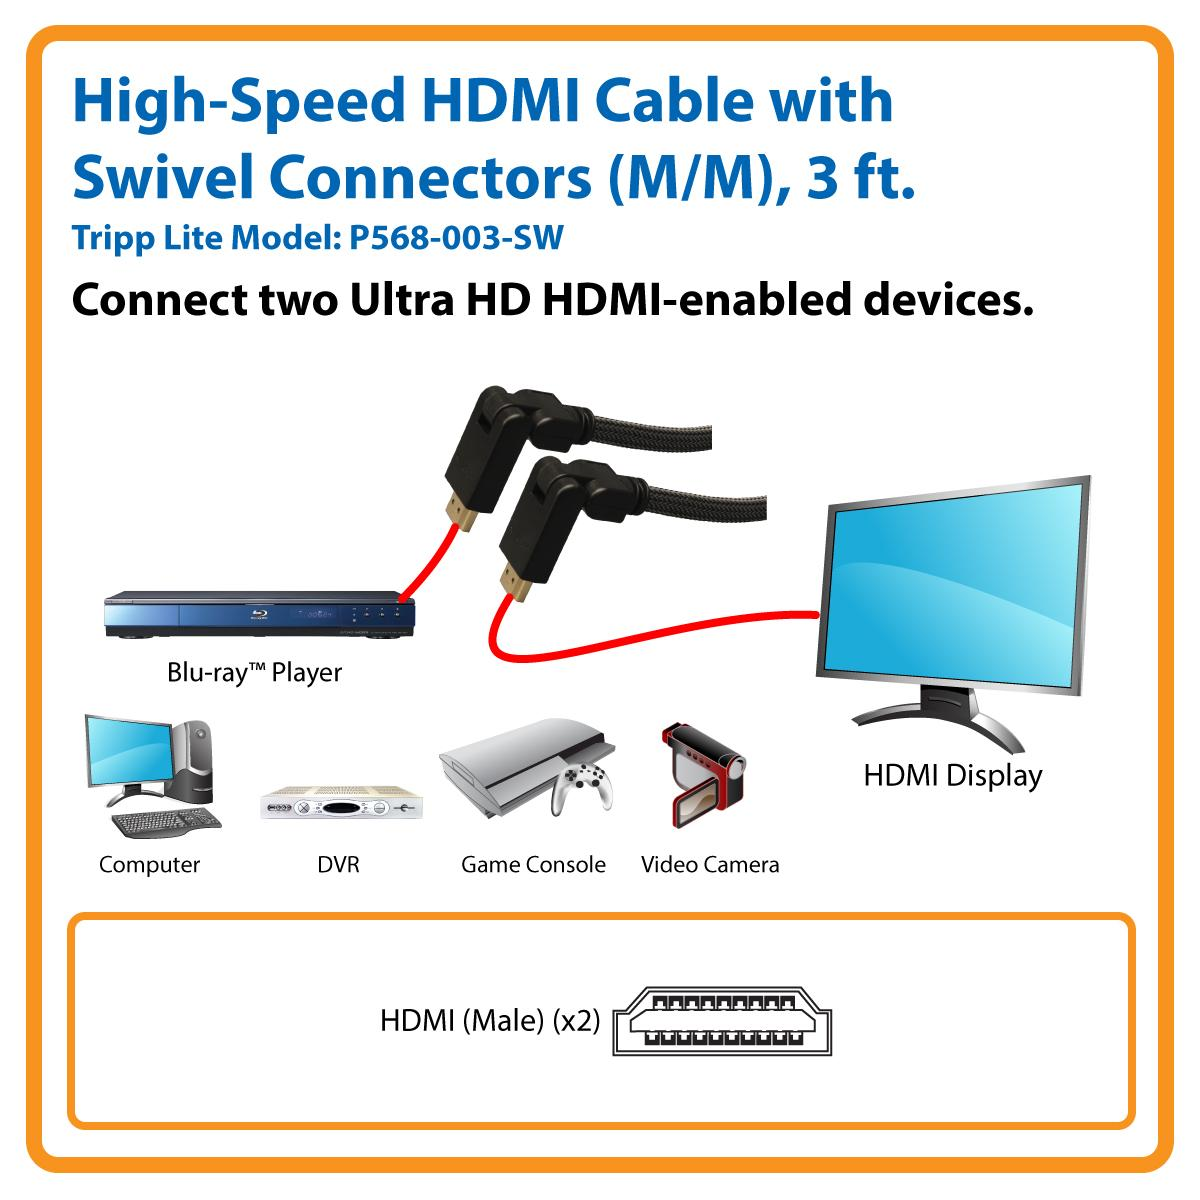 Tripp Lite High Speed Hdmi Cable With Swivel Connectors Cat 6 Jack Wiring Diagram As Well Anatomy Male Reproductive System View Larger